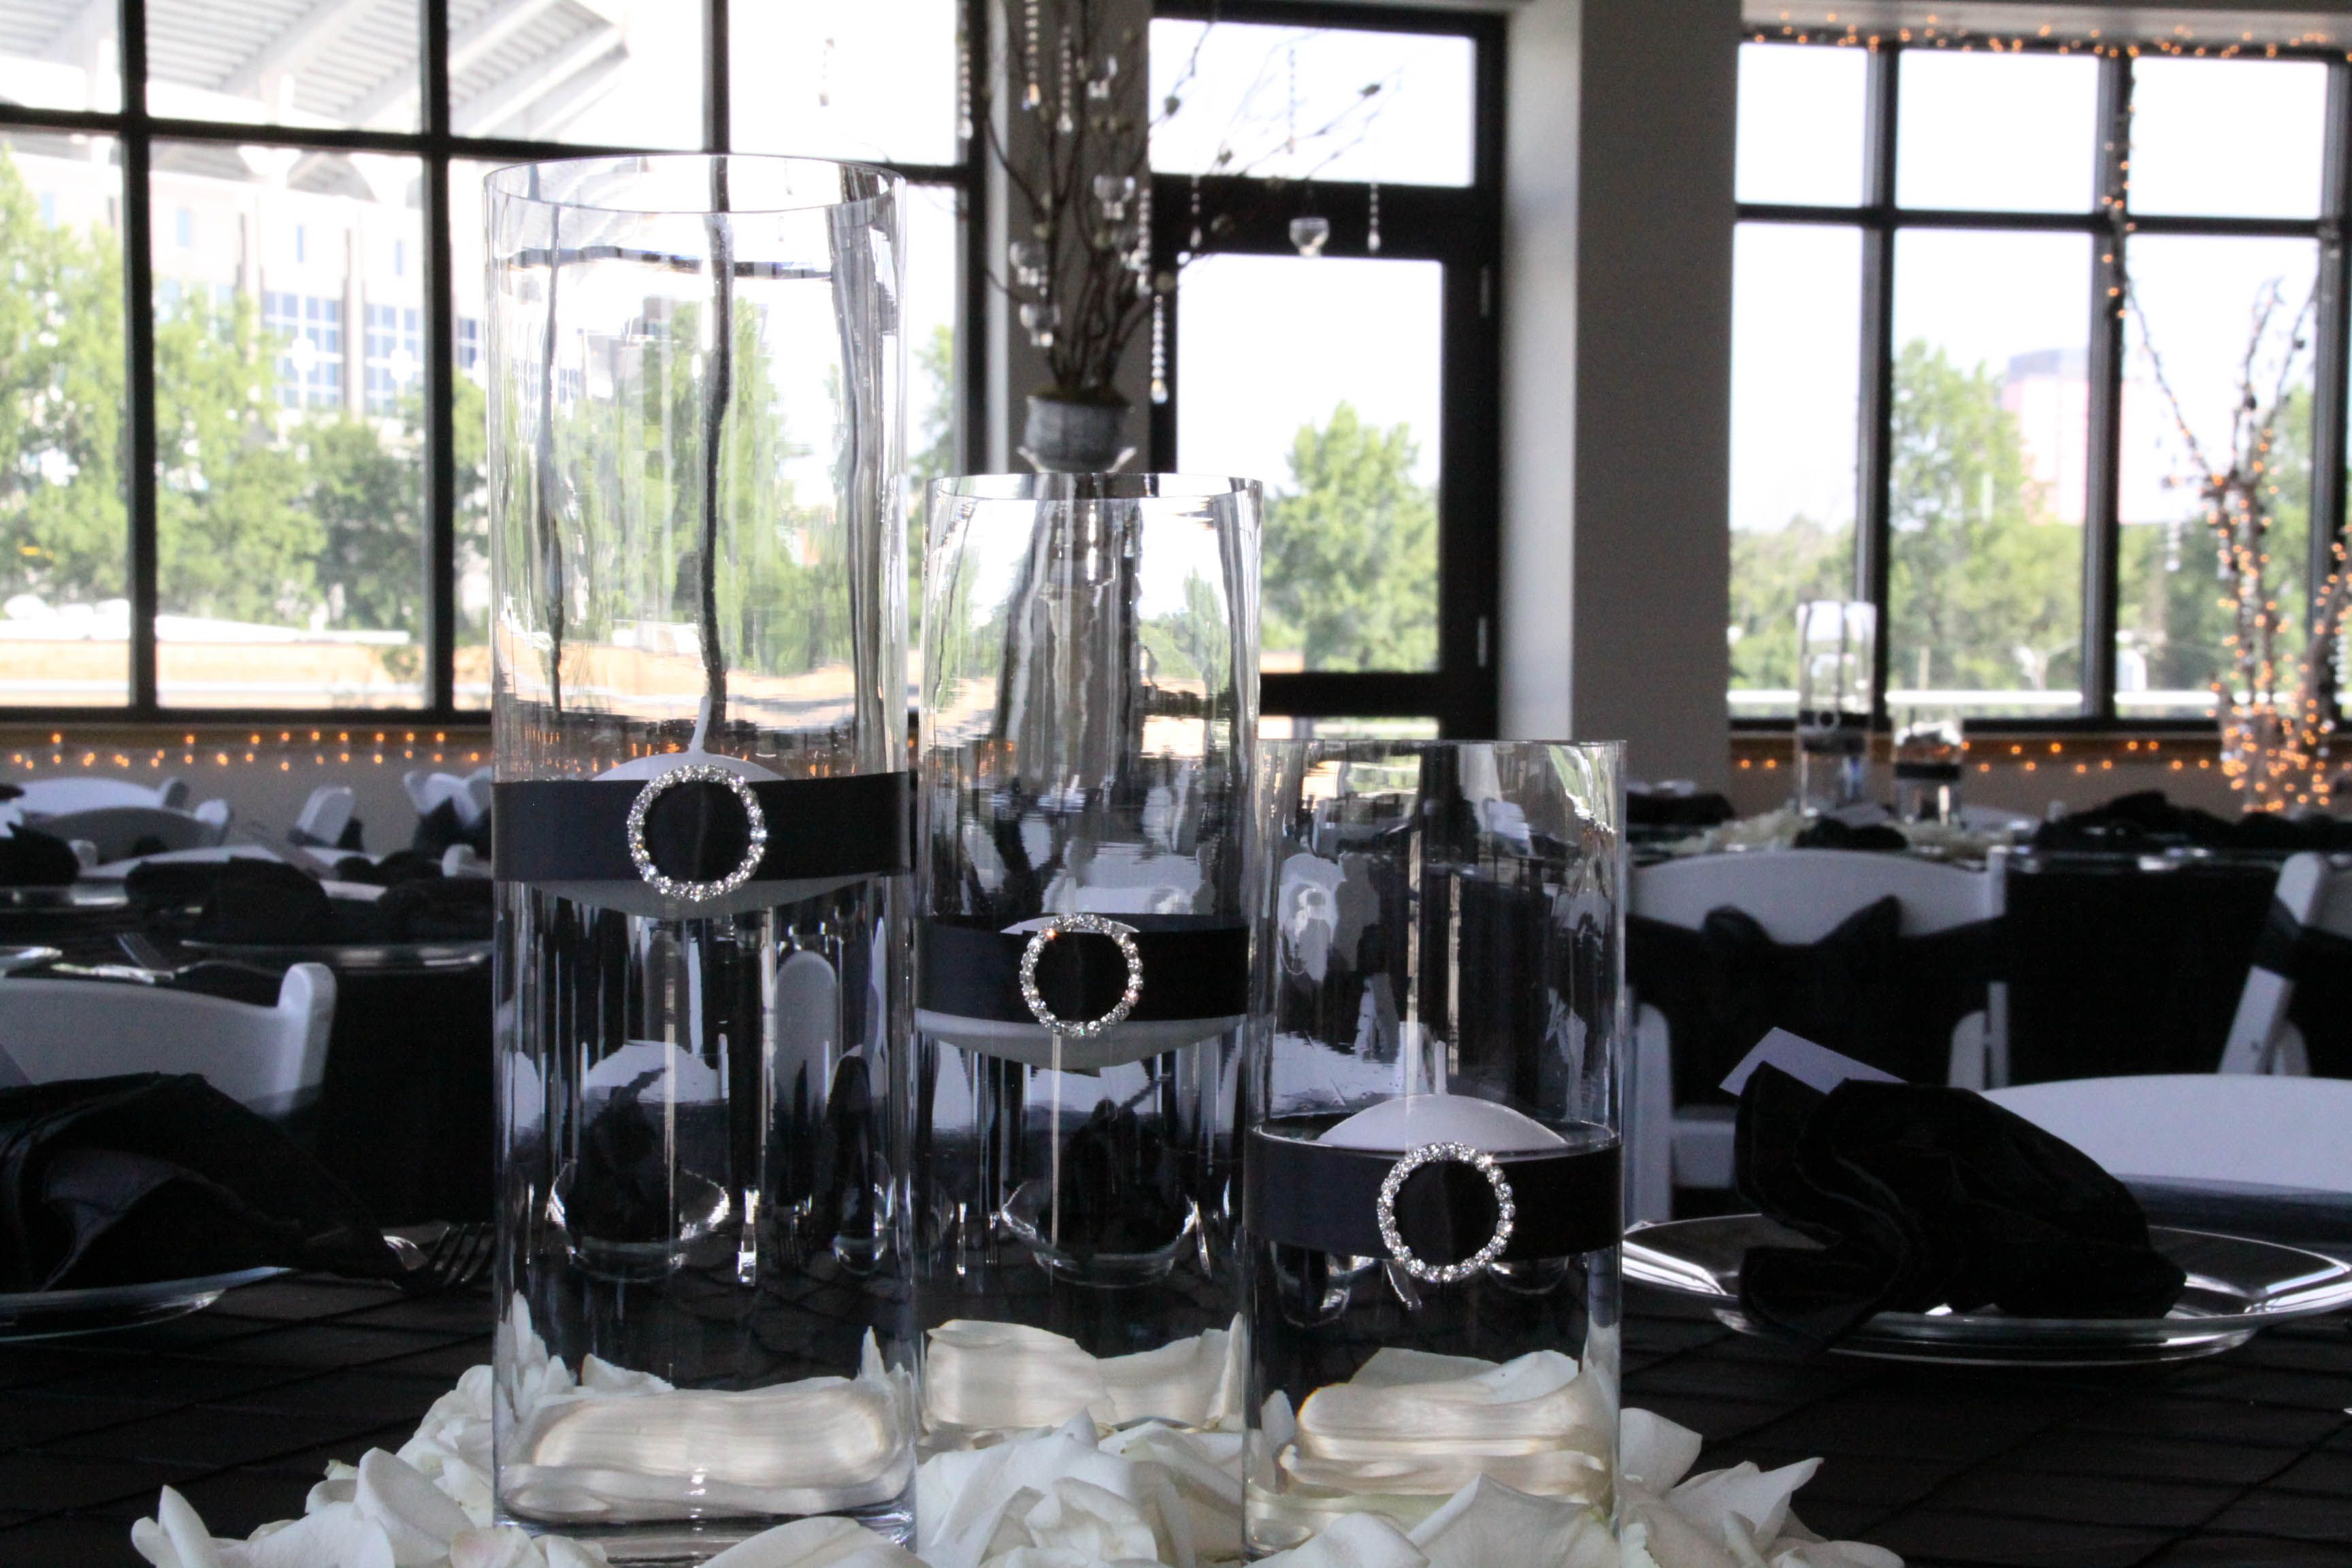 centerpieces for wedding receptions with candles%0A   Glass Cylinder Wedding Centerpiece with Floating Candles and Black Ribbon  surrounded by White Rose Petals